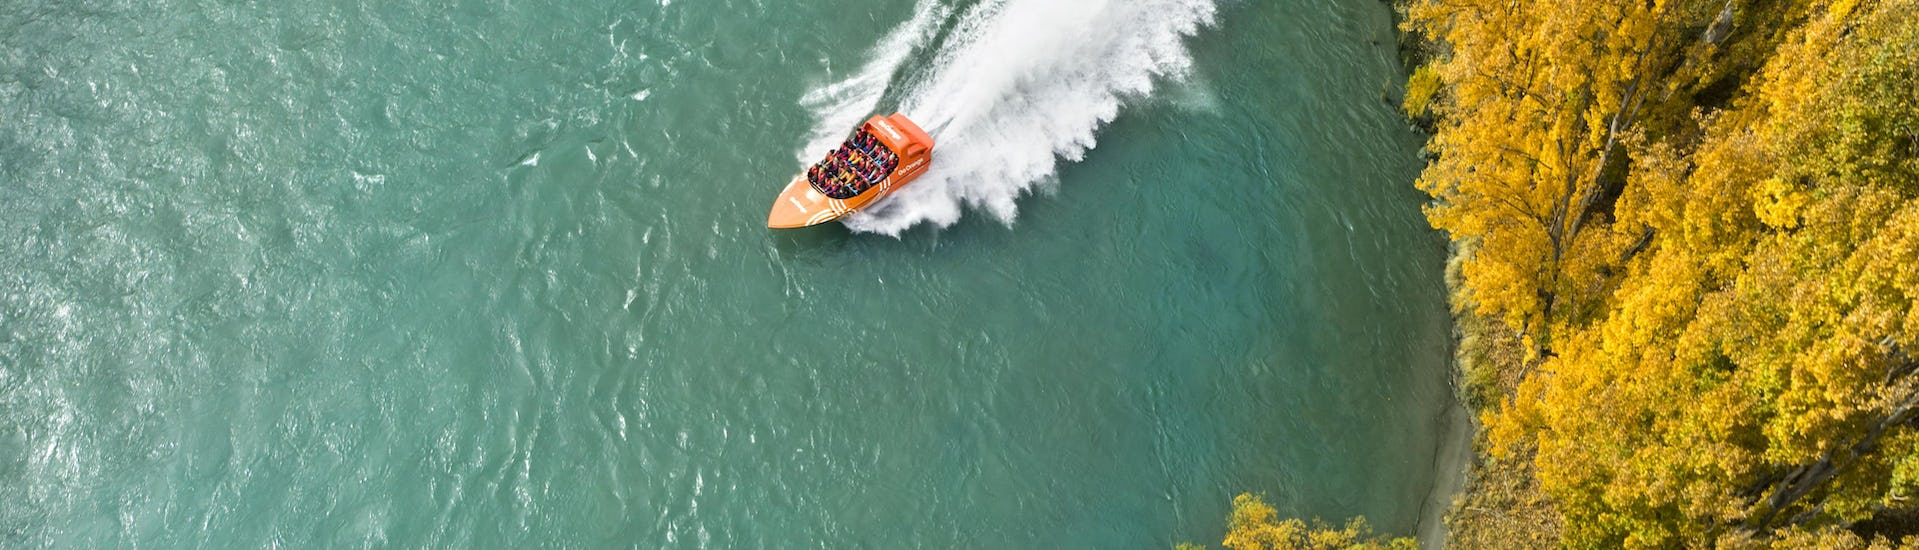 A jet boat is making a 360° spi during Jet Boat Tour from Queenstown organized by Go Orange